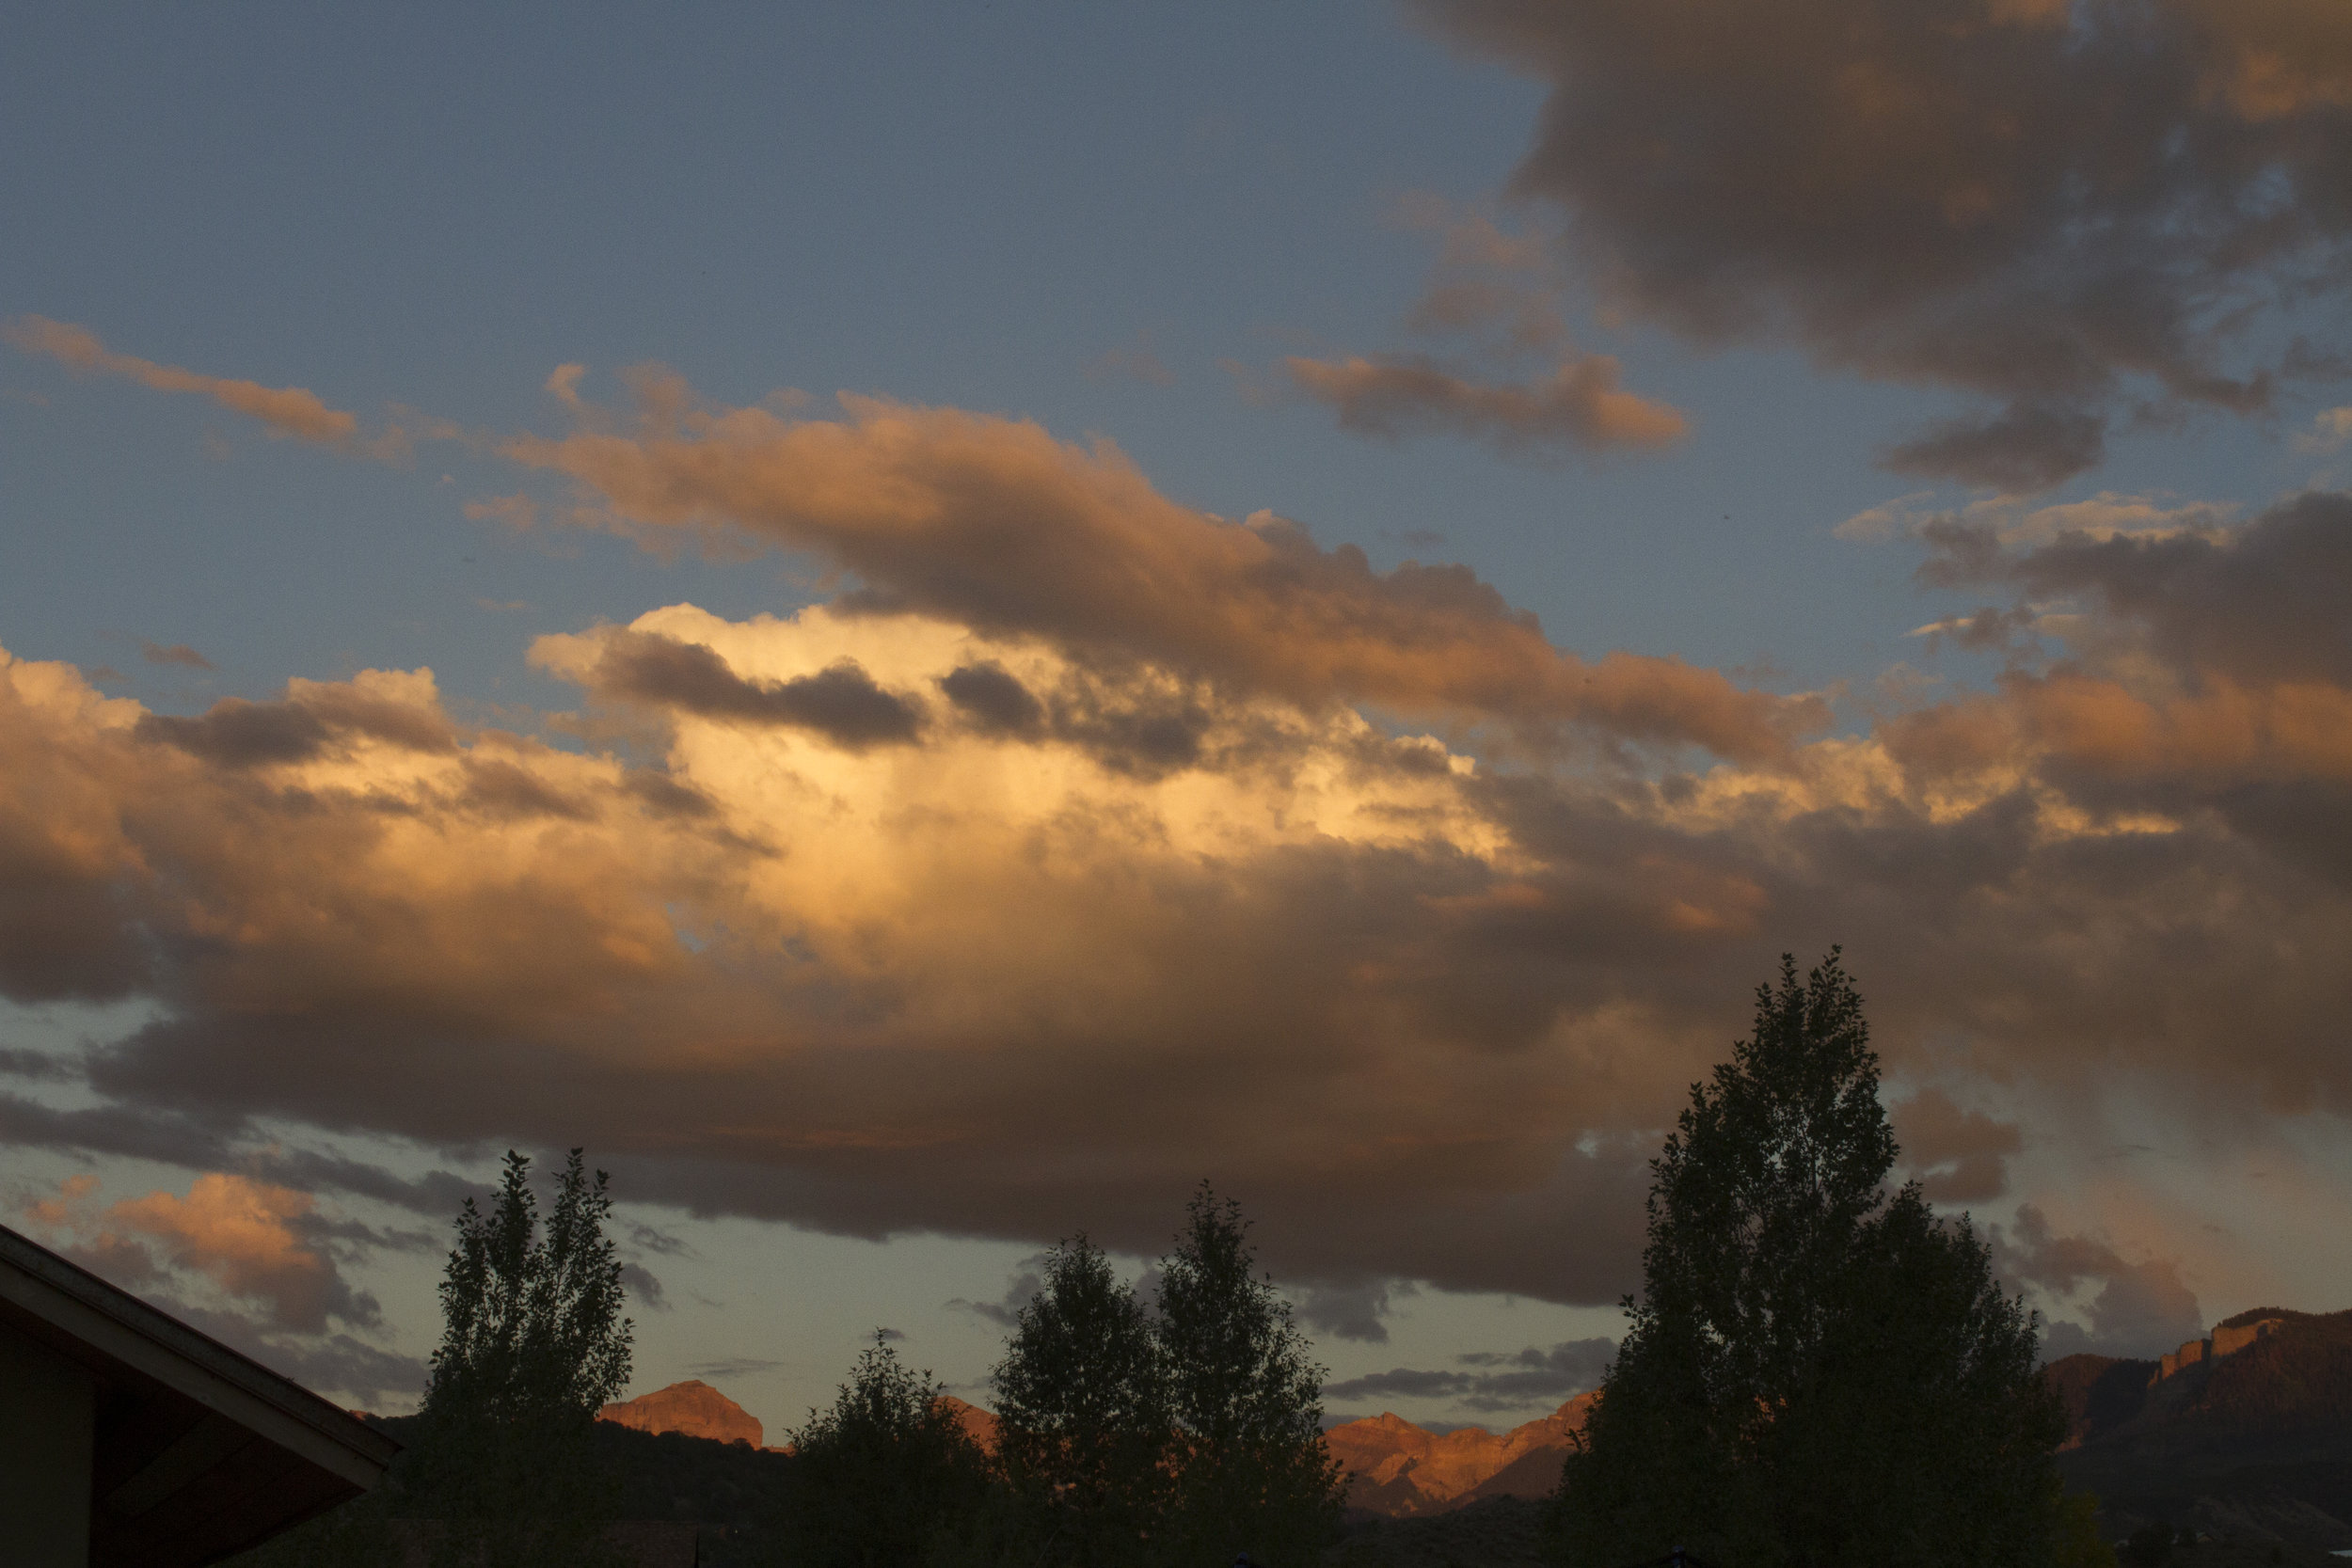 Sunset reflecting on the mountains in Ridgway, CO